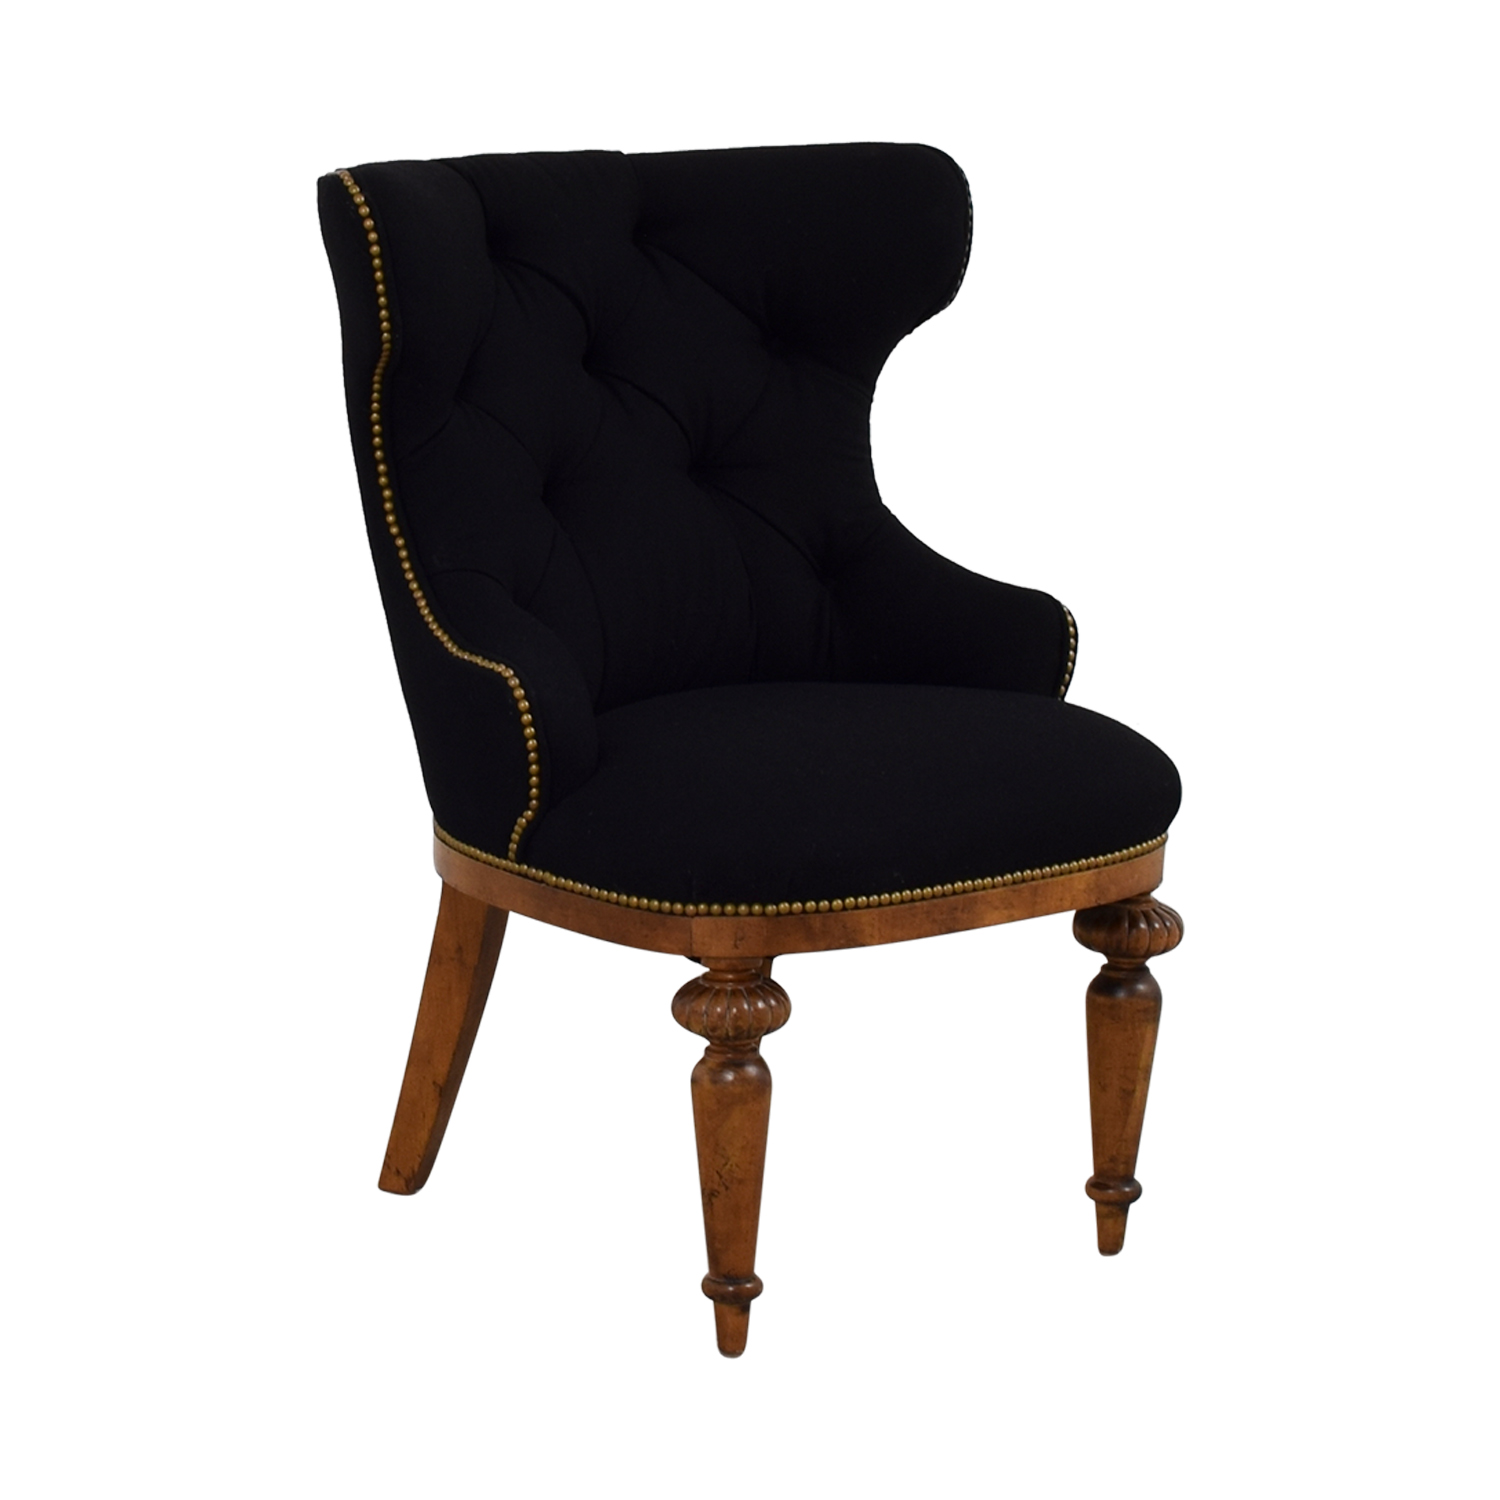 tufted nailhead chair bedroom with rail 89 off furniture masters black